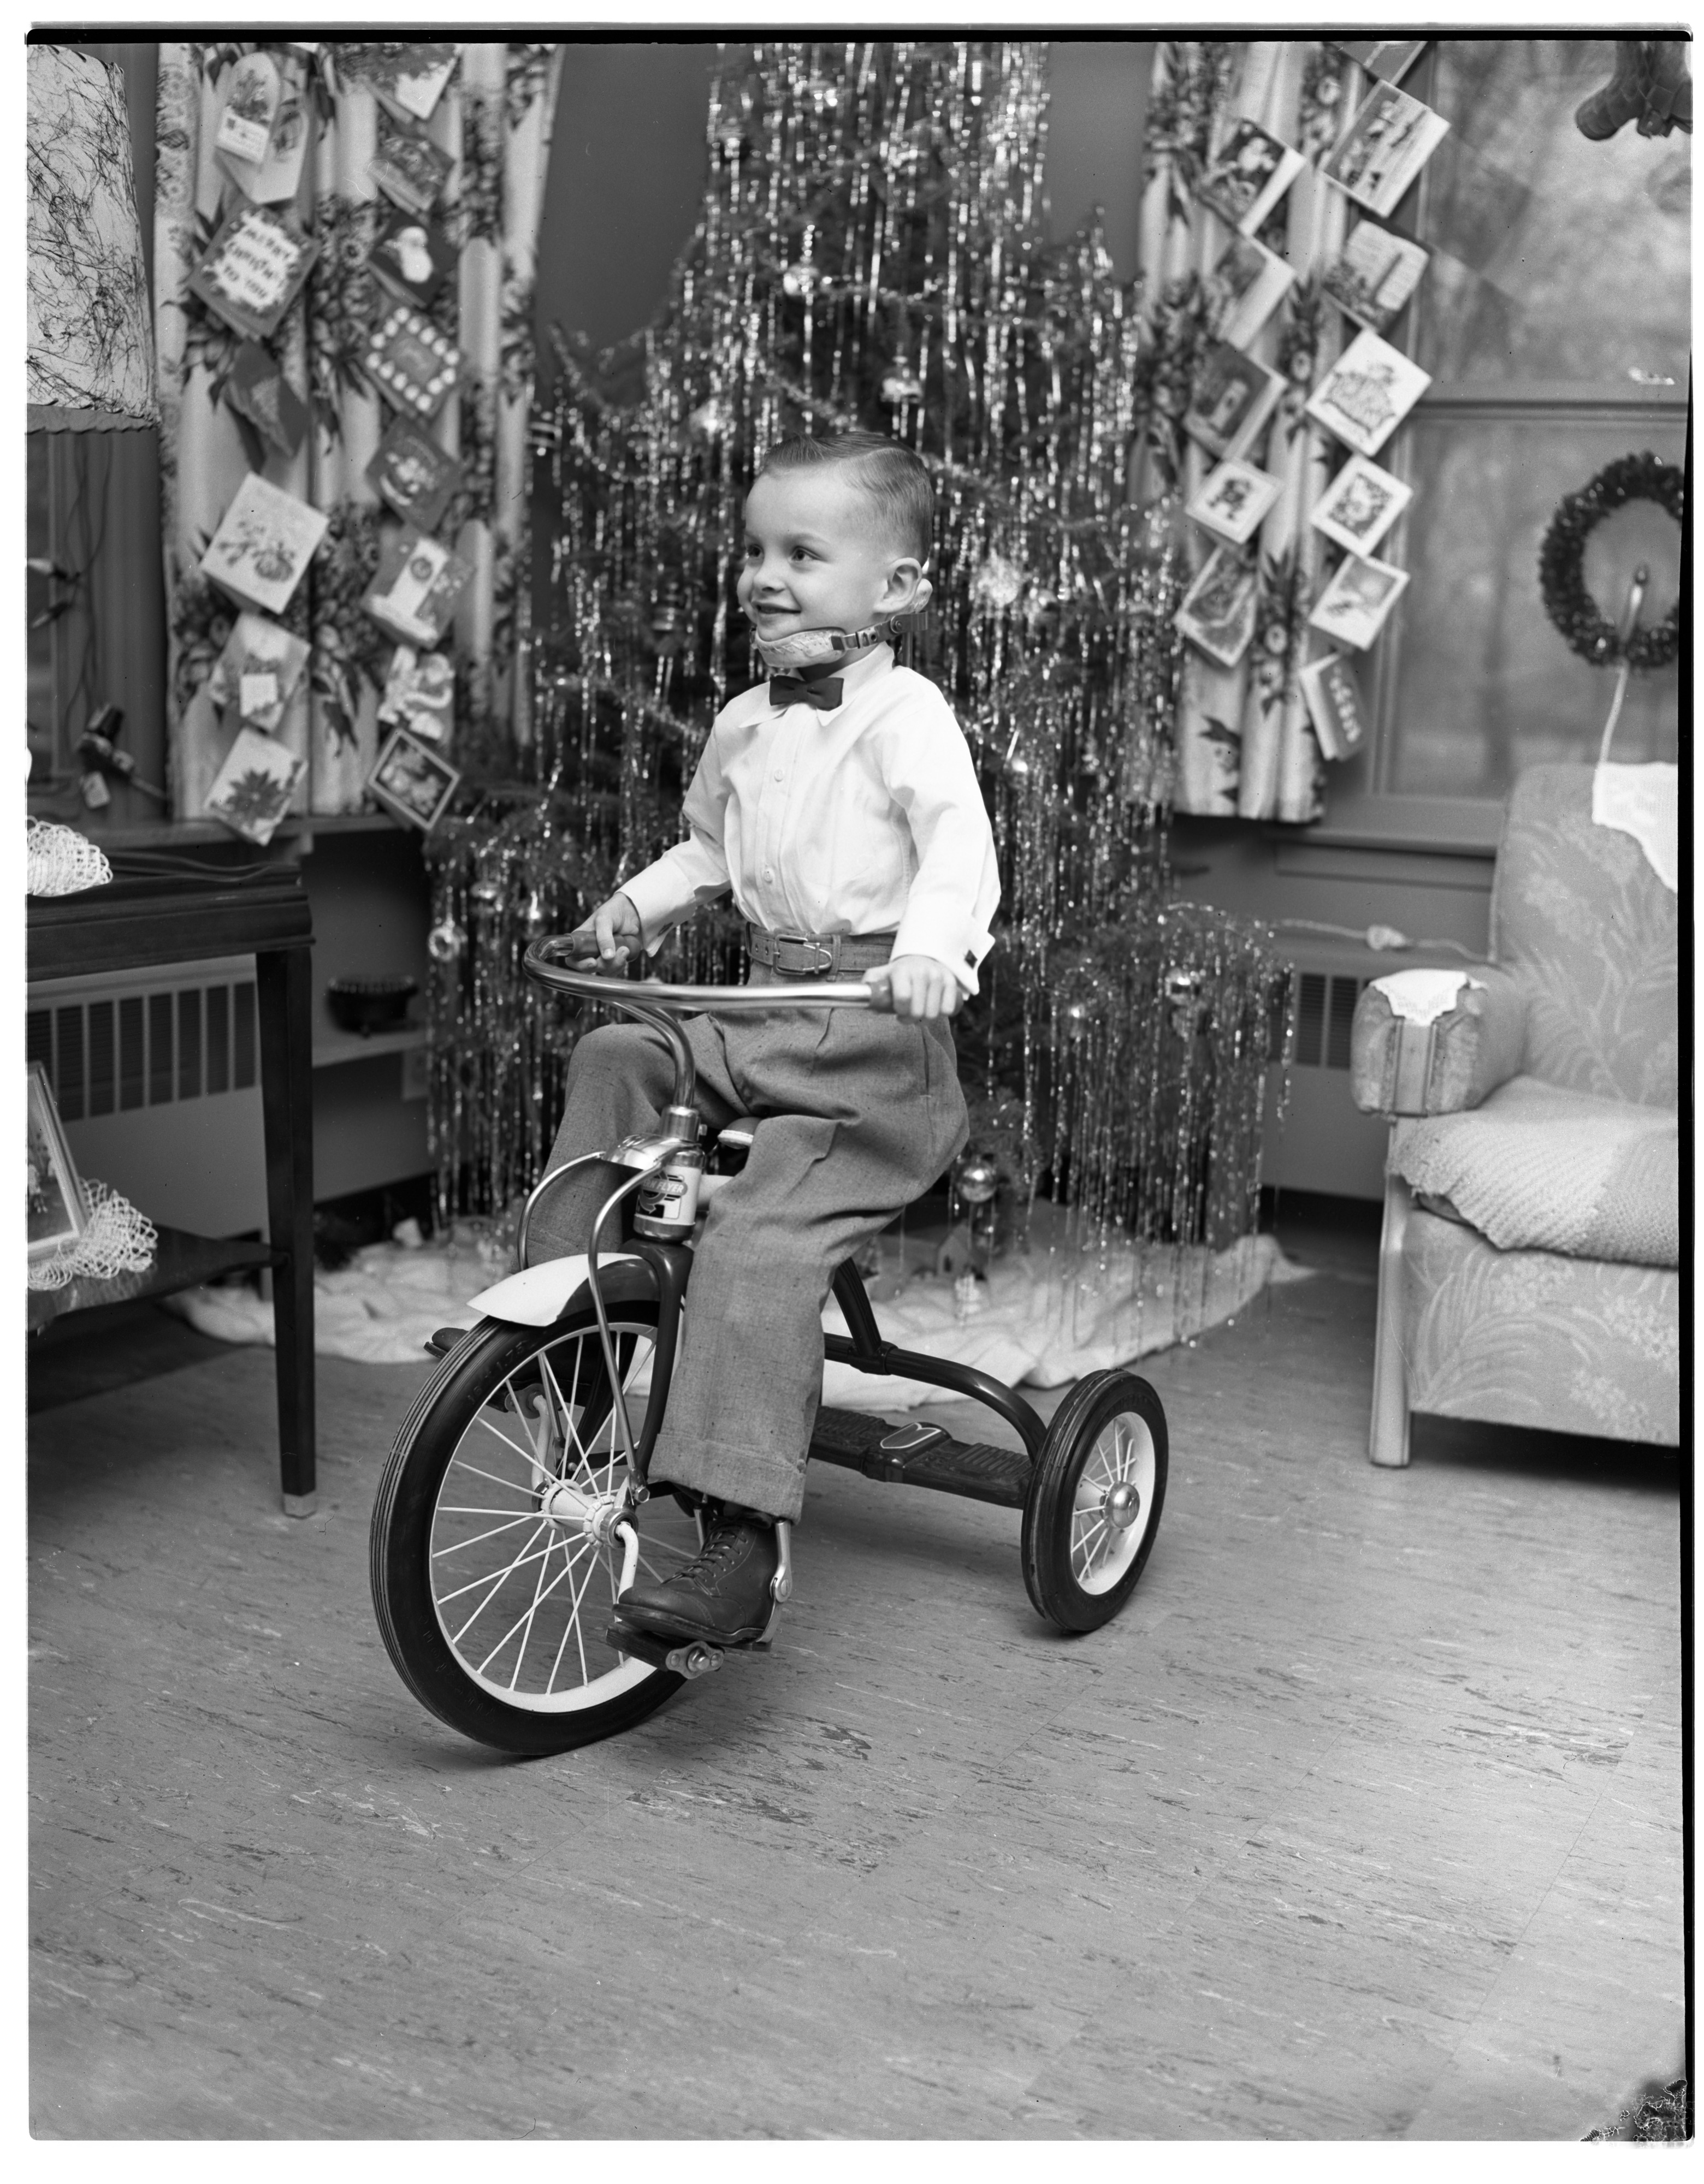 David Bauer rides his new tricycle, December 1955 image